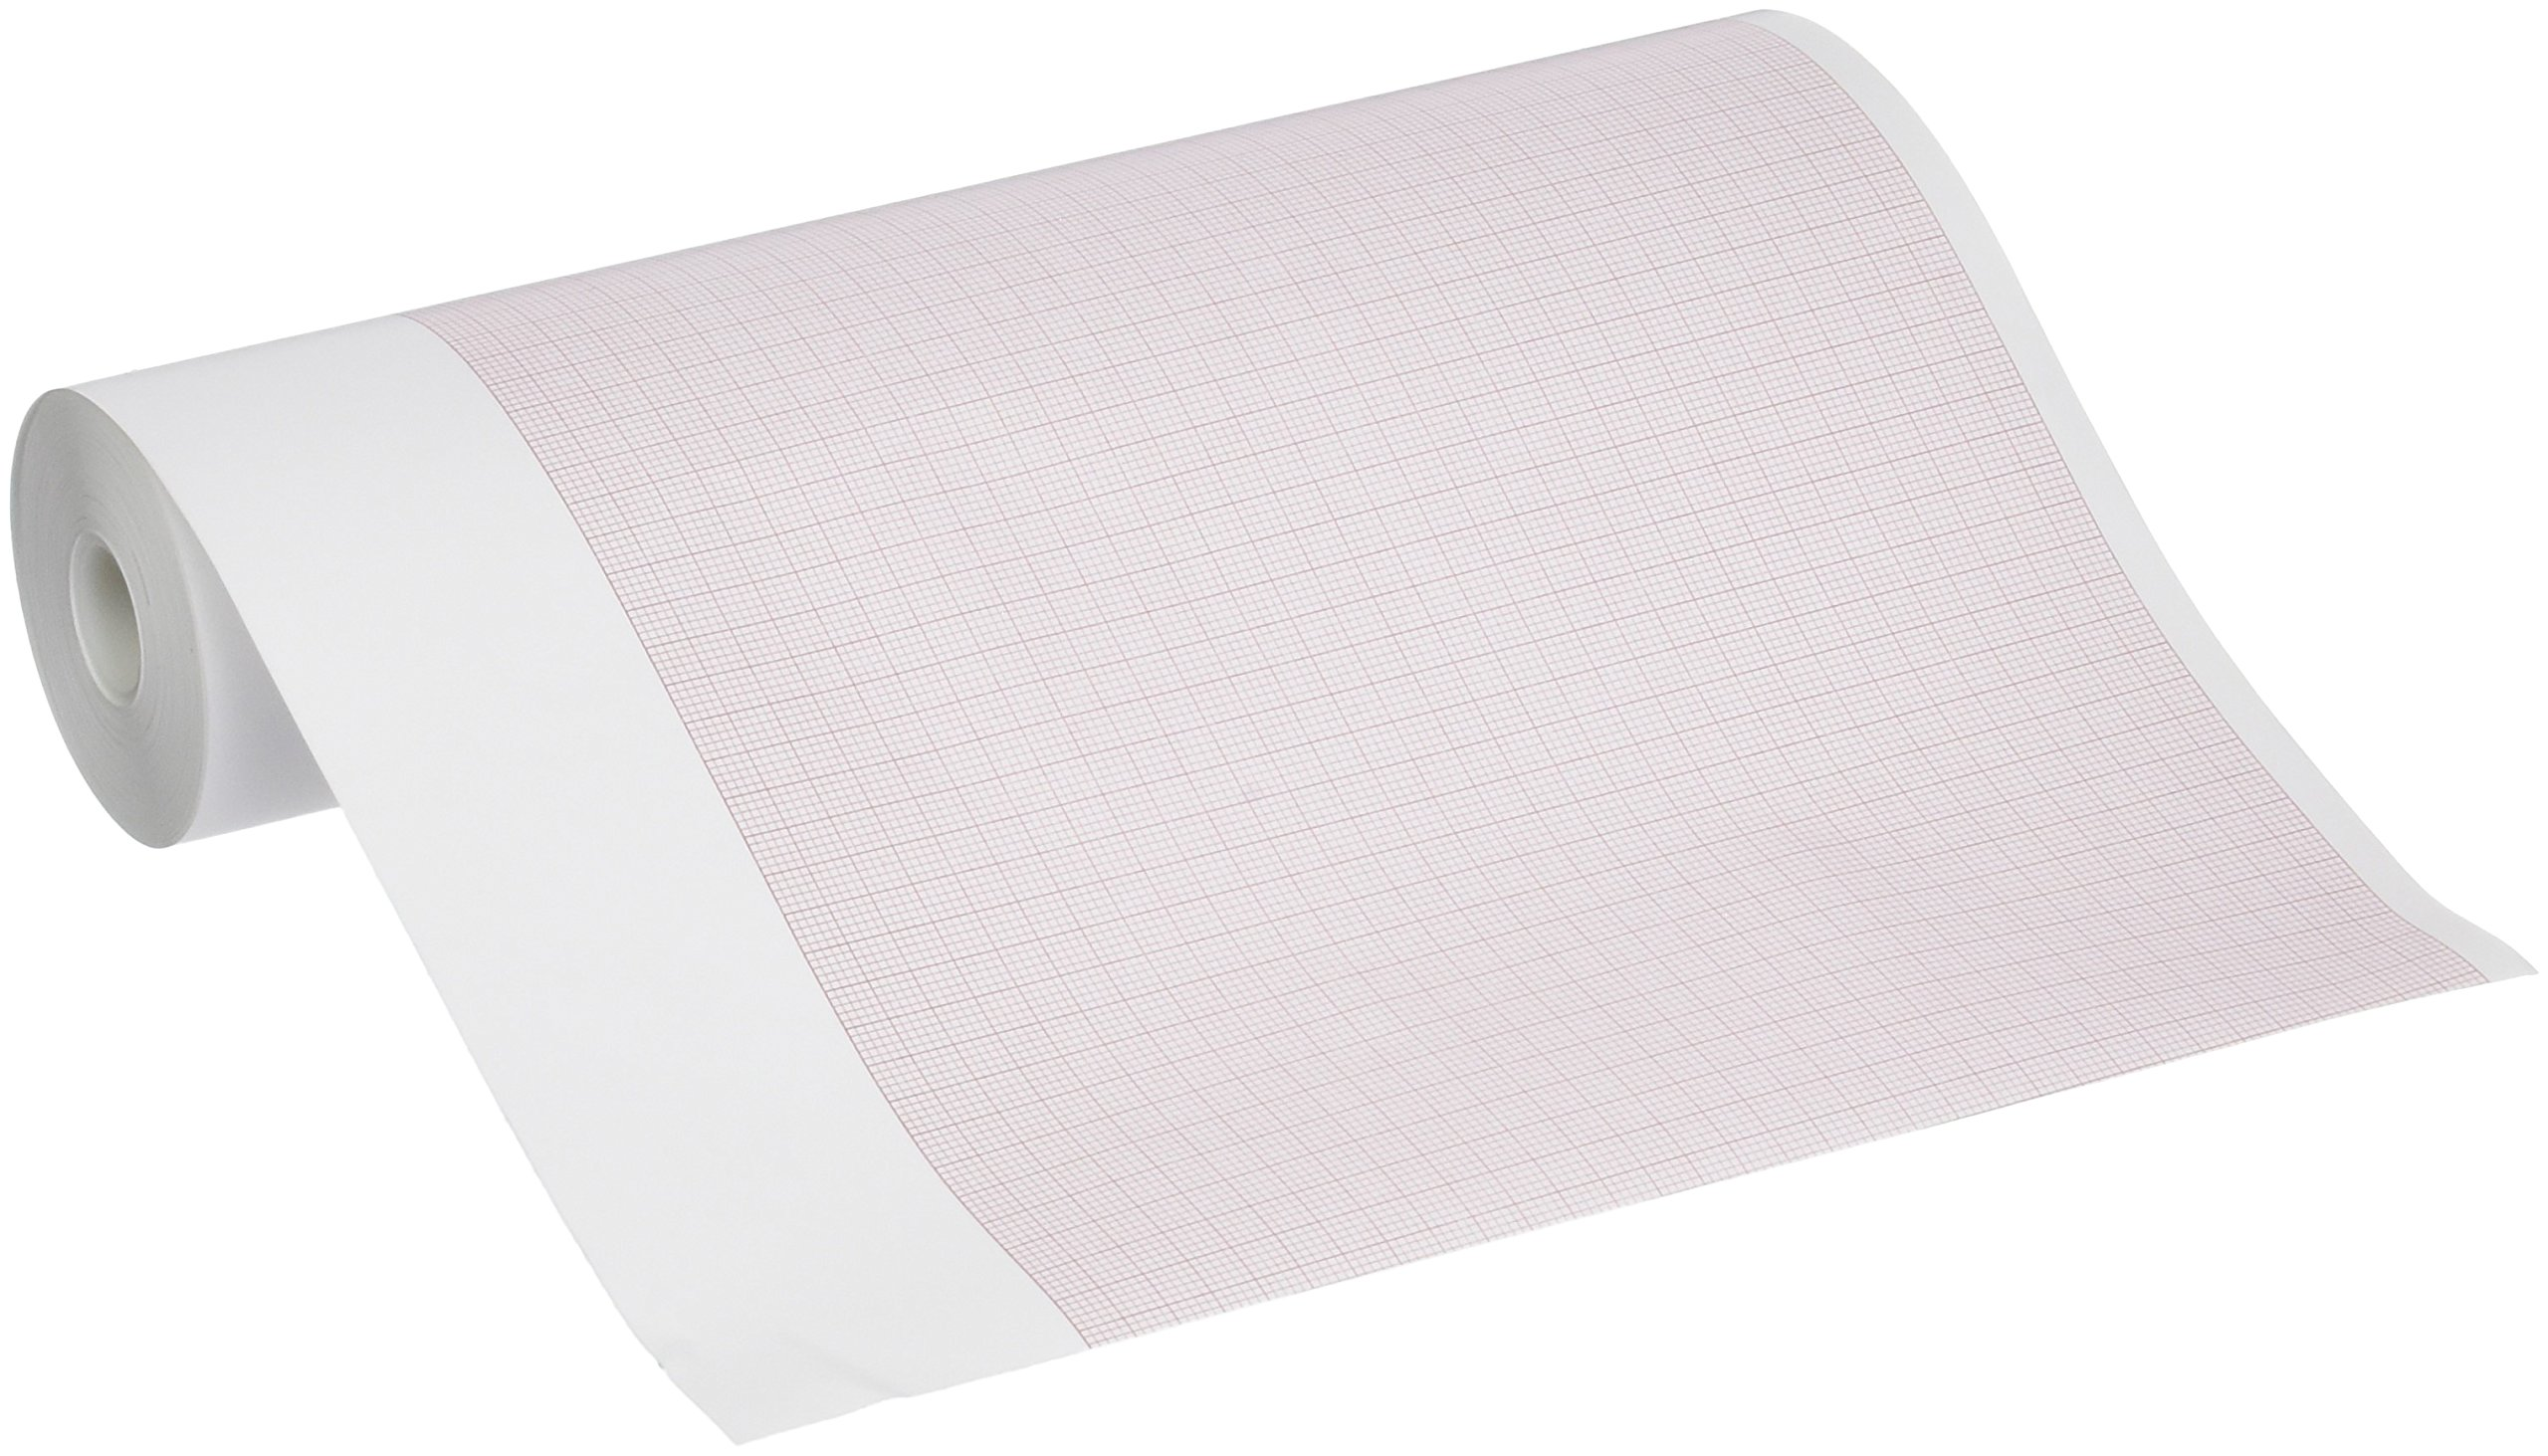 Mortara 9100-029-50 Thermal Paper Roll with Header Full Size for use with The ELI/Bur 230, 8/27'' x 840'' Size (Pack of 12) by Mortara (Image #1)